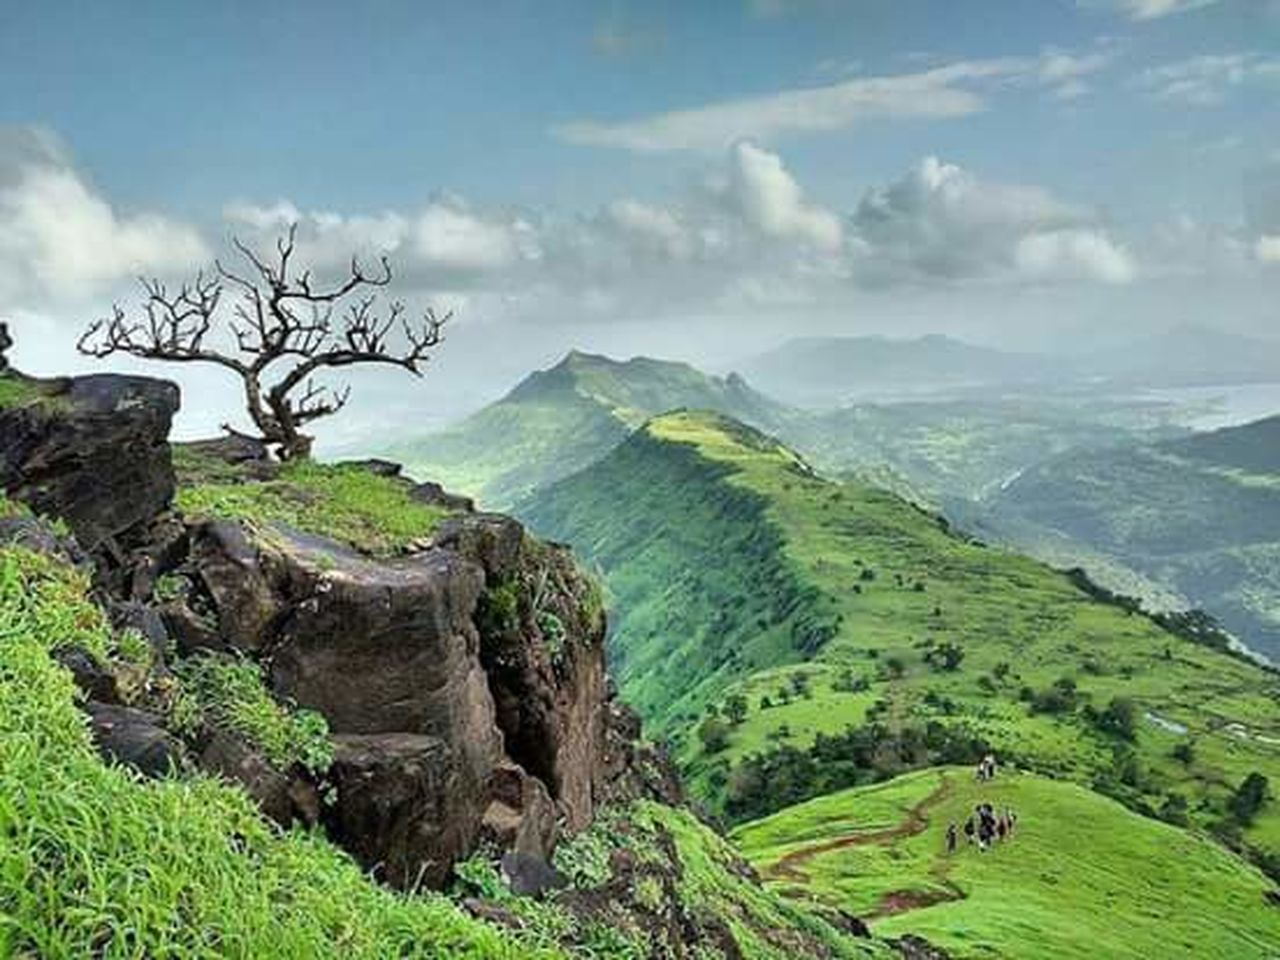 landscape, nature, mountain, scenics, beauty in nature, tranquility, tree, travel, field, tranquil scene, travel destinations, no people, outdoors, agriculture, cloud - sky, sky, day, plant, rural scene, fog, growth, vacations, terraced field, rice paddy